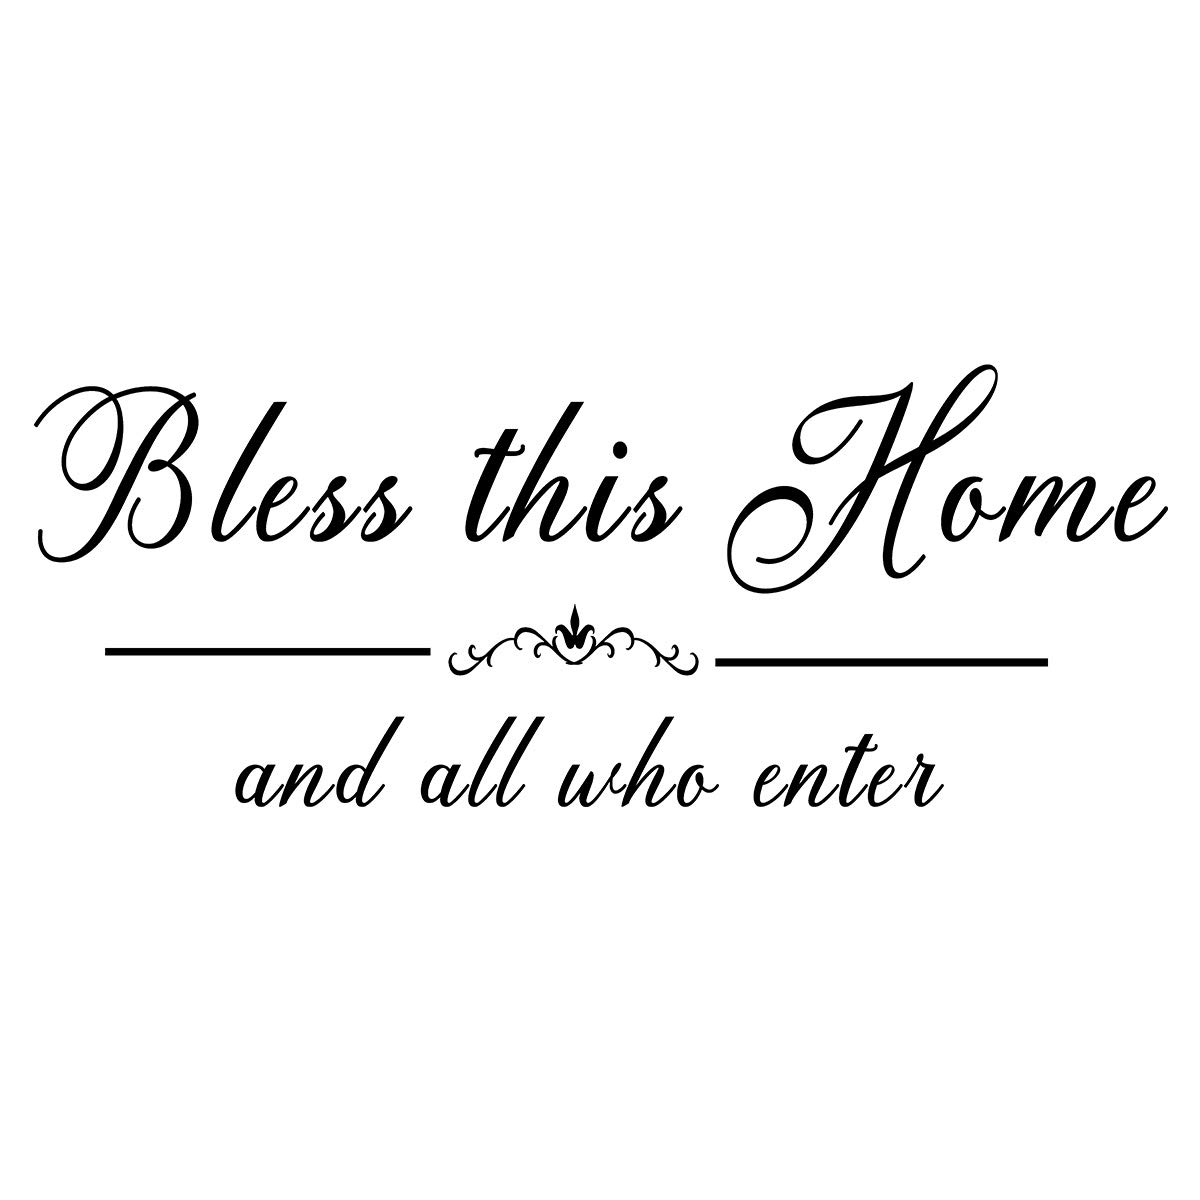 """Vinyl Wall Art Sticker - Bless This Home and All Who Enter, Prayer Word Decal Walls for Home Entryway Décor or Kitchen Dining Room Bedroom Handwriting Art Letters 23.6""""× 8.2"""""""